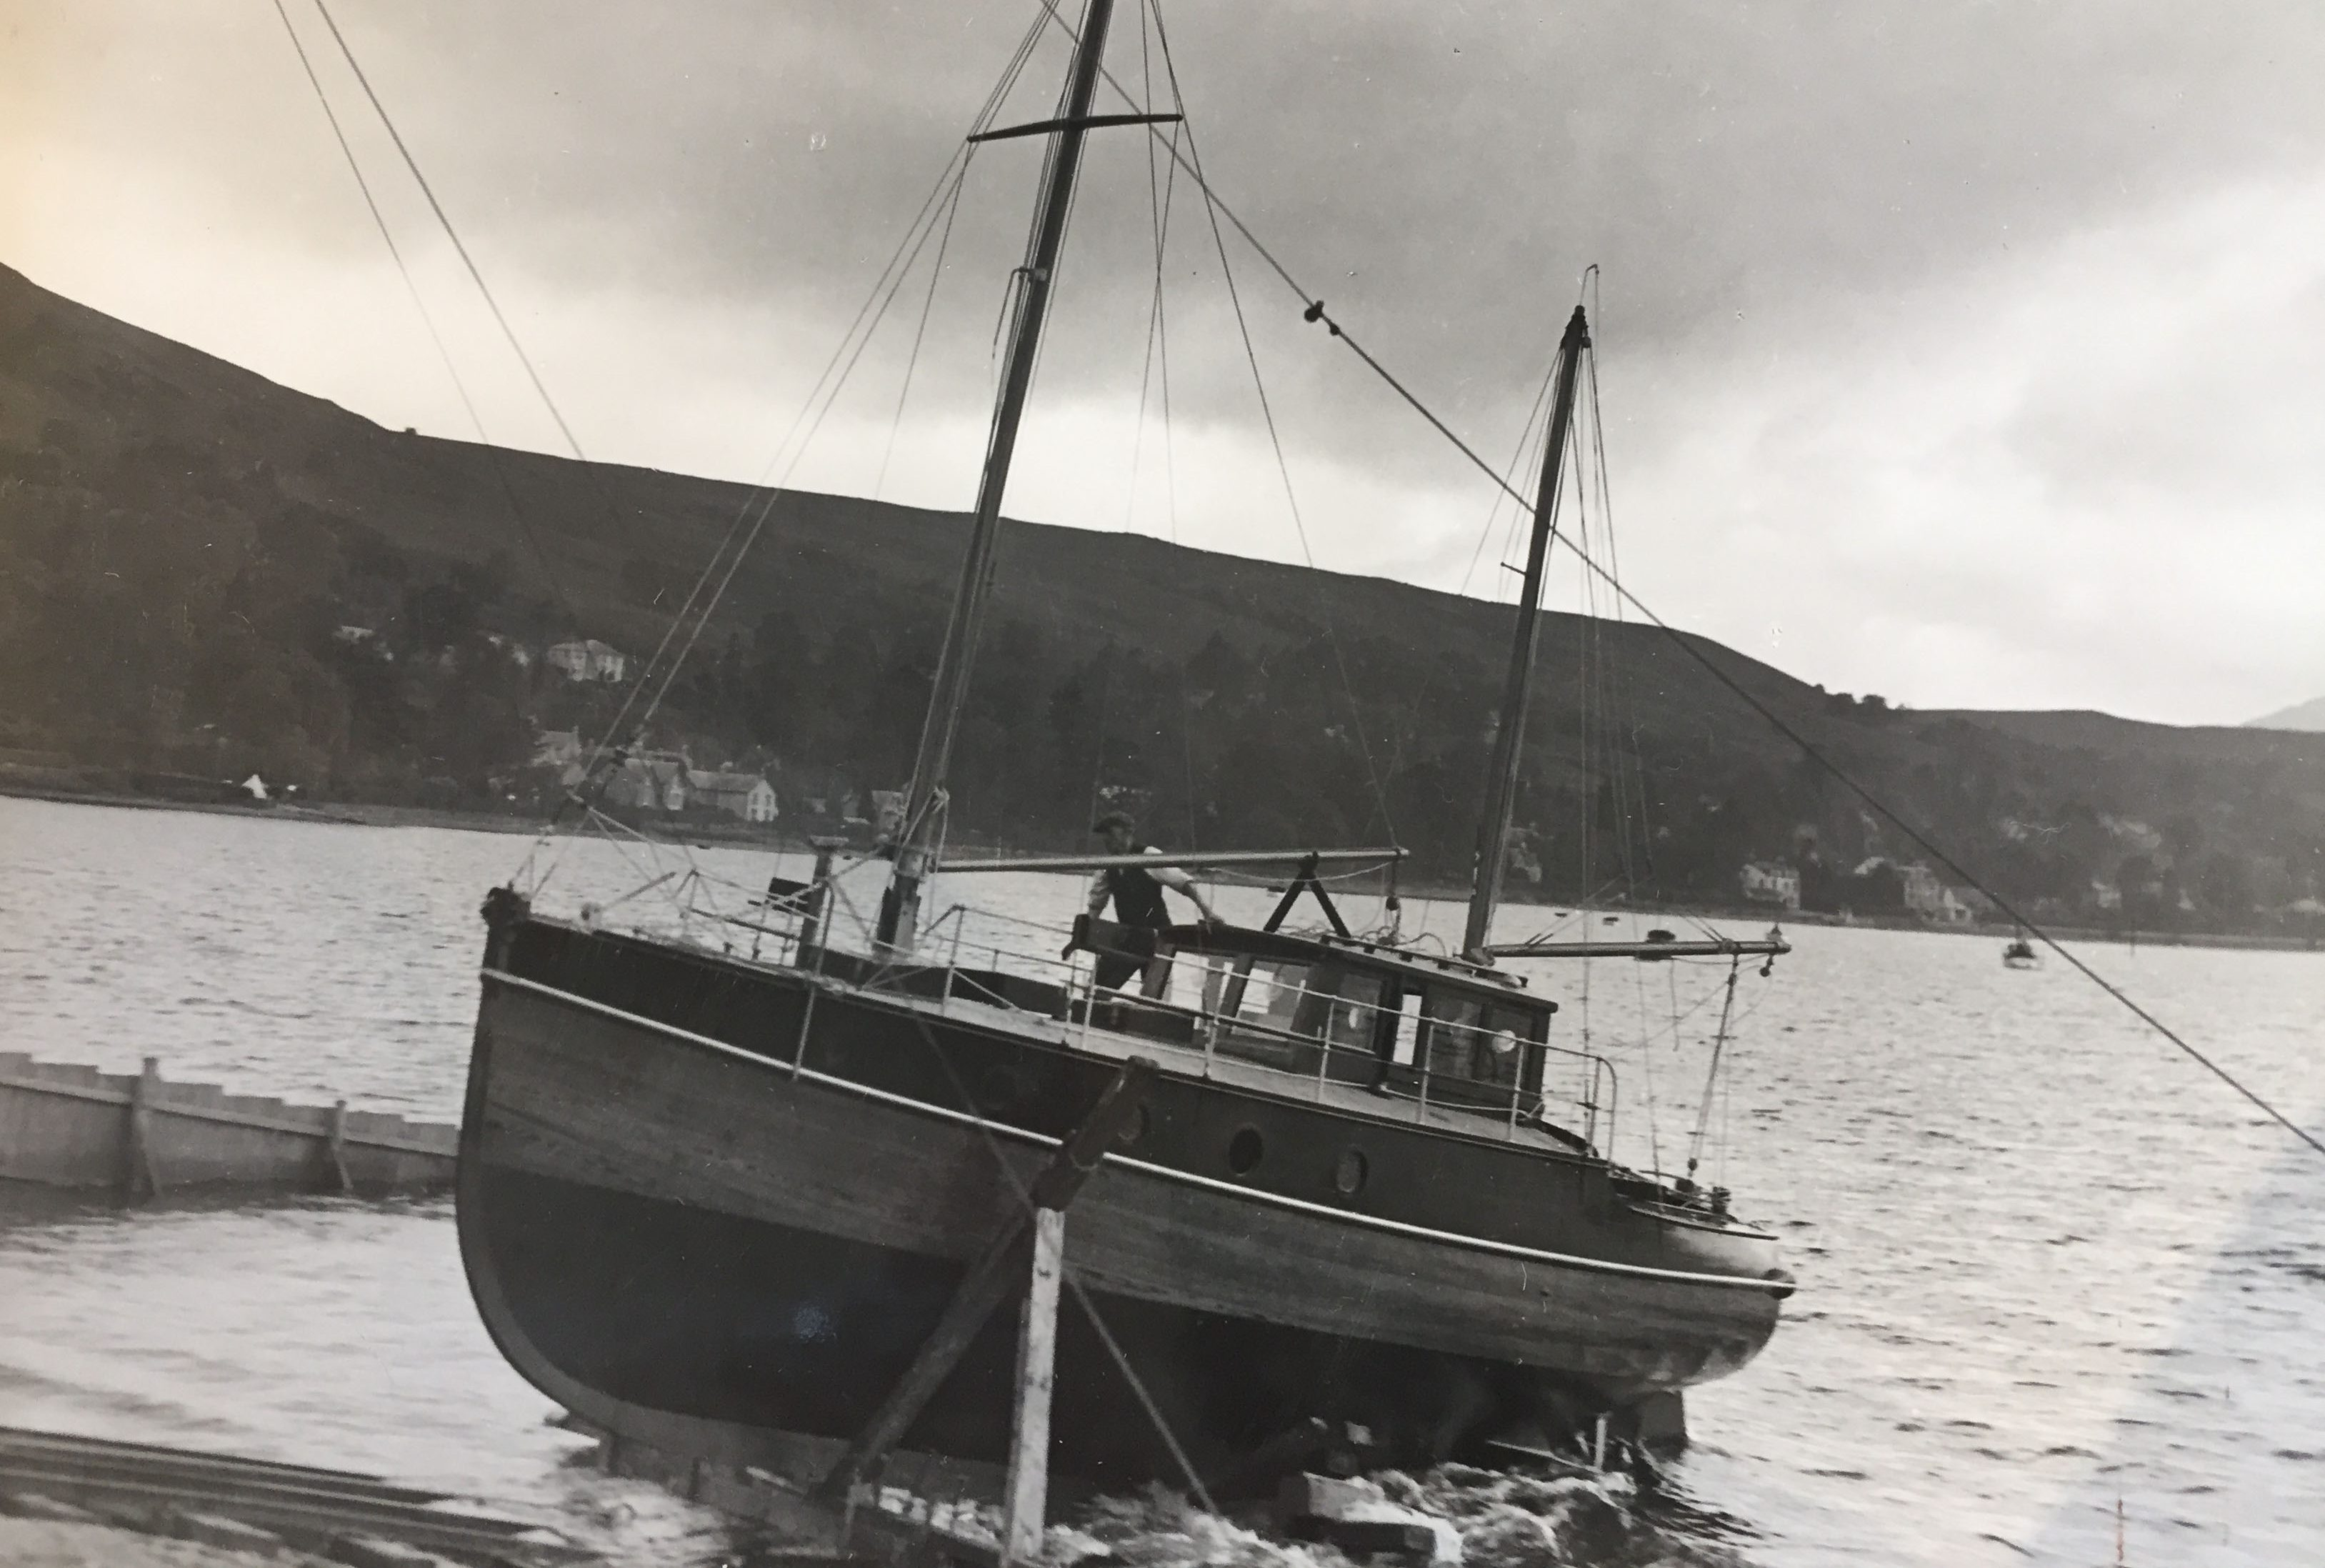 Downside Catholic School Archive Photos - Boat